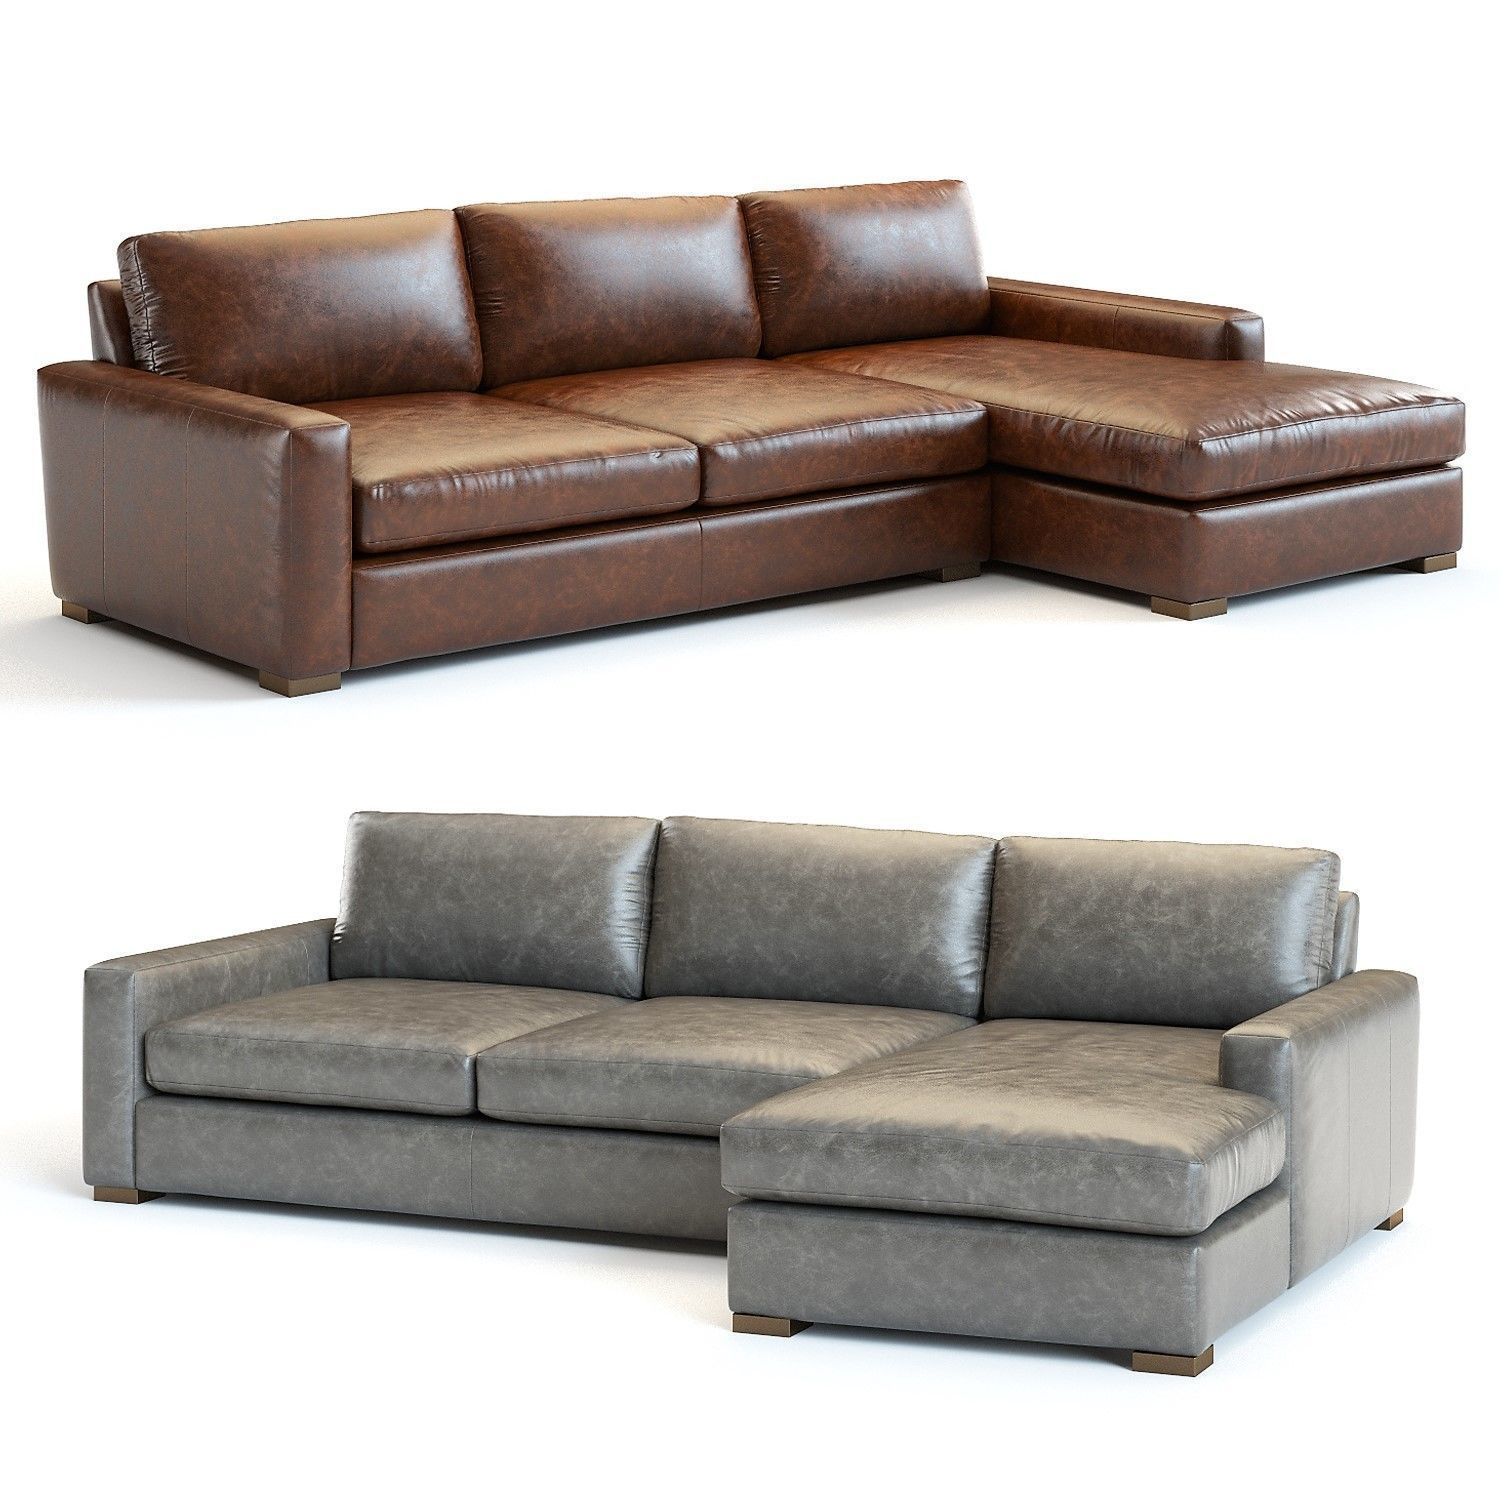 Restoration Hardware Maxwell Leather Sectional Model